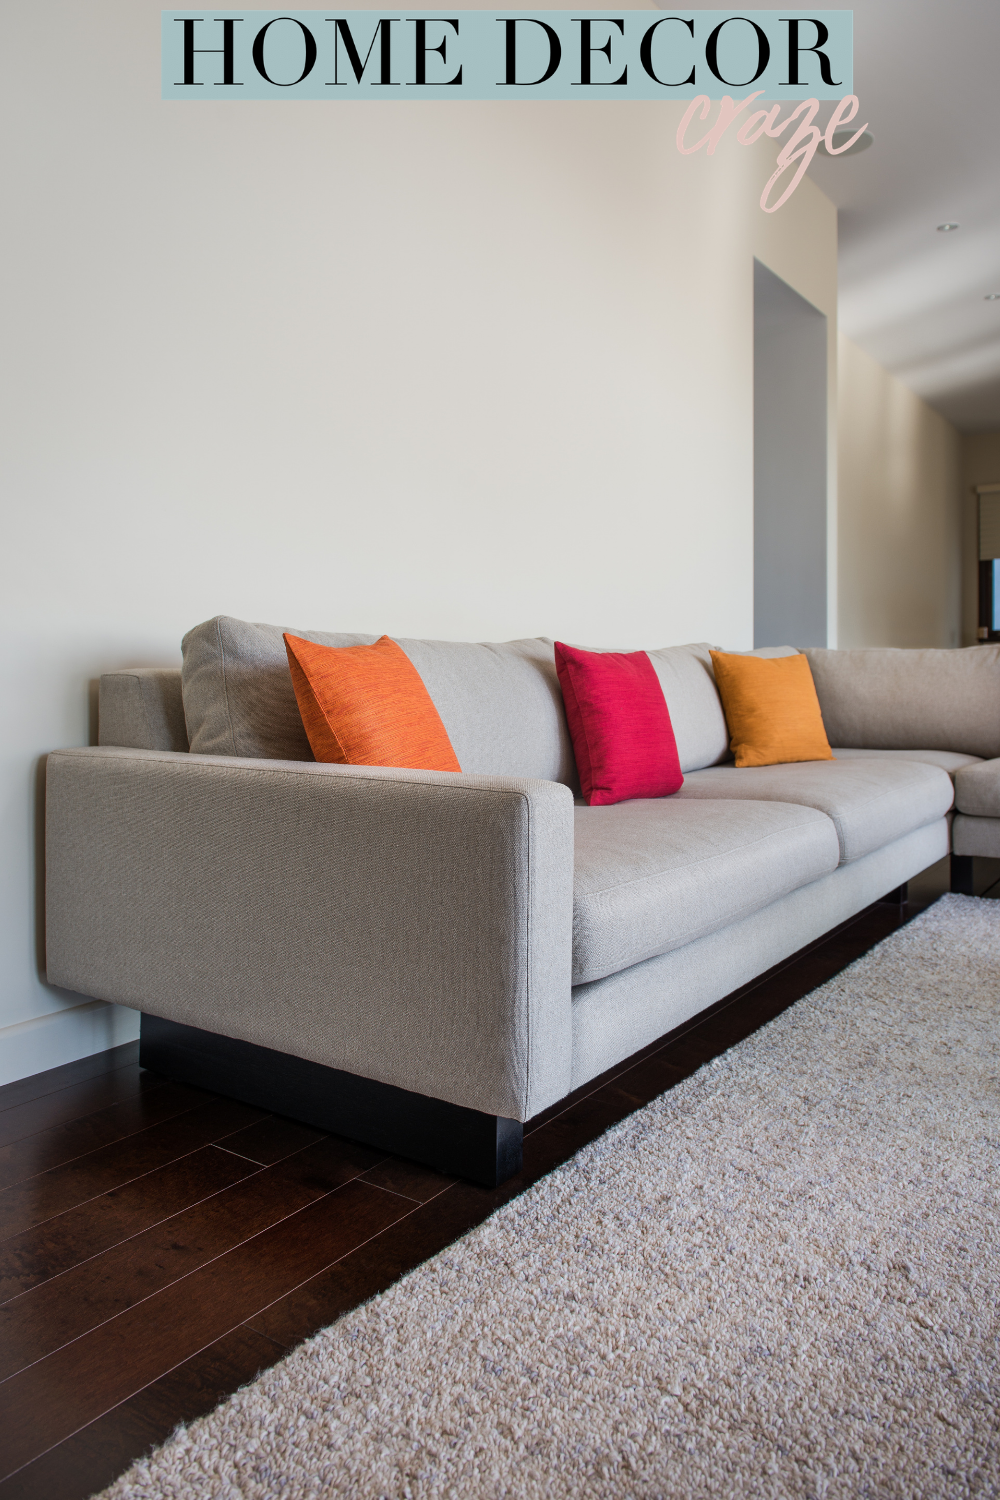 Living Room Designs Grey Couch Ideas: Click for more living room designs grey couch ideas. #livingroomdesignsgreycouch #livingroomdesignsgreycouchboho #livingroomdesignsgreycouchsofas #livingroomdesigns #livingroomideas